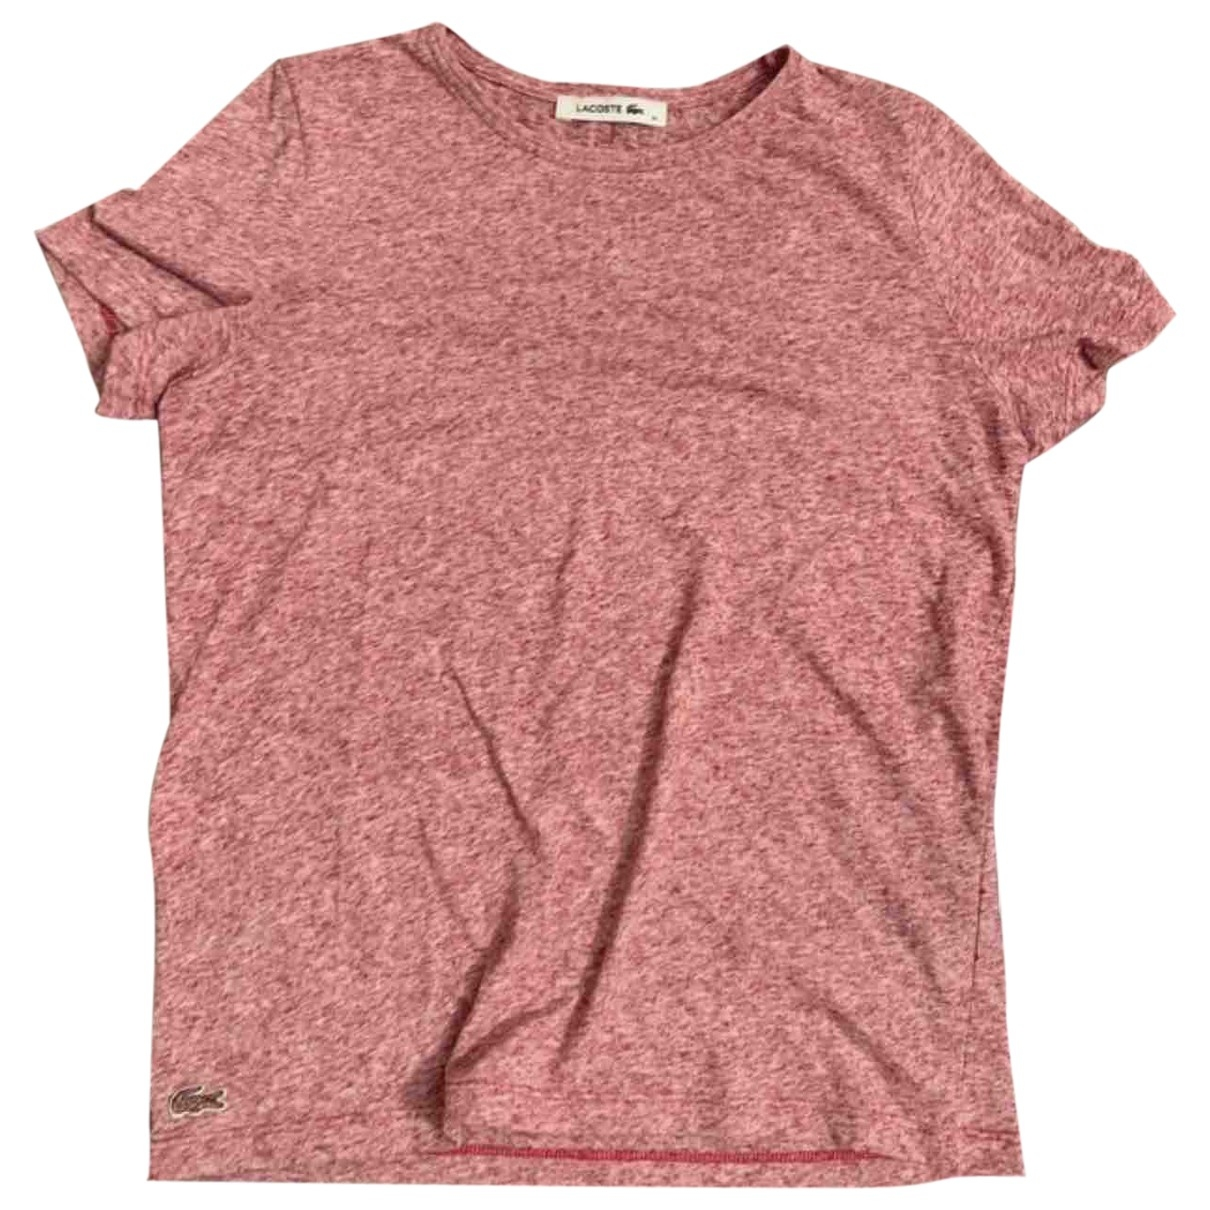 Lacoste \N Pink Cotton  top for Women XS International